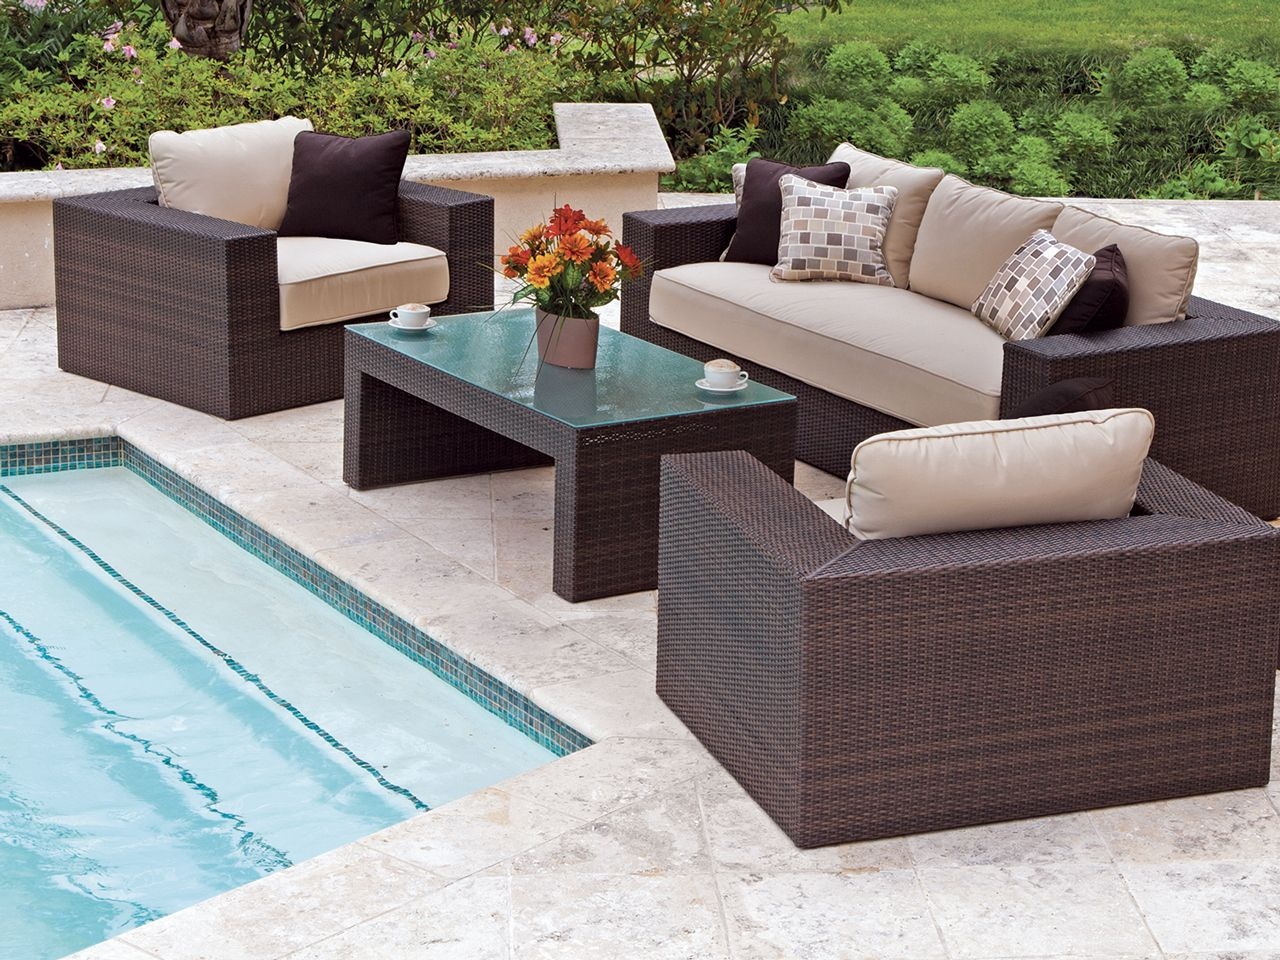 Current Sale Patio Furniture For Sale Outdoor Furniture Outdoor Furniture Sets